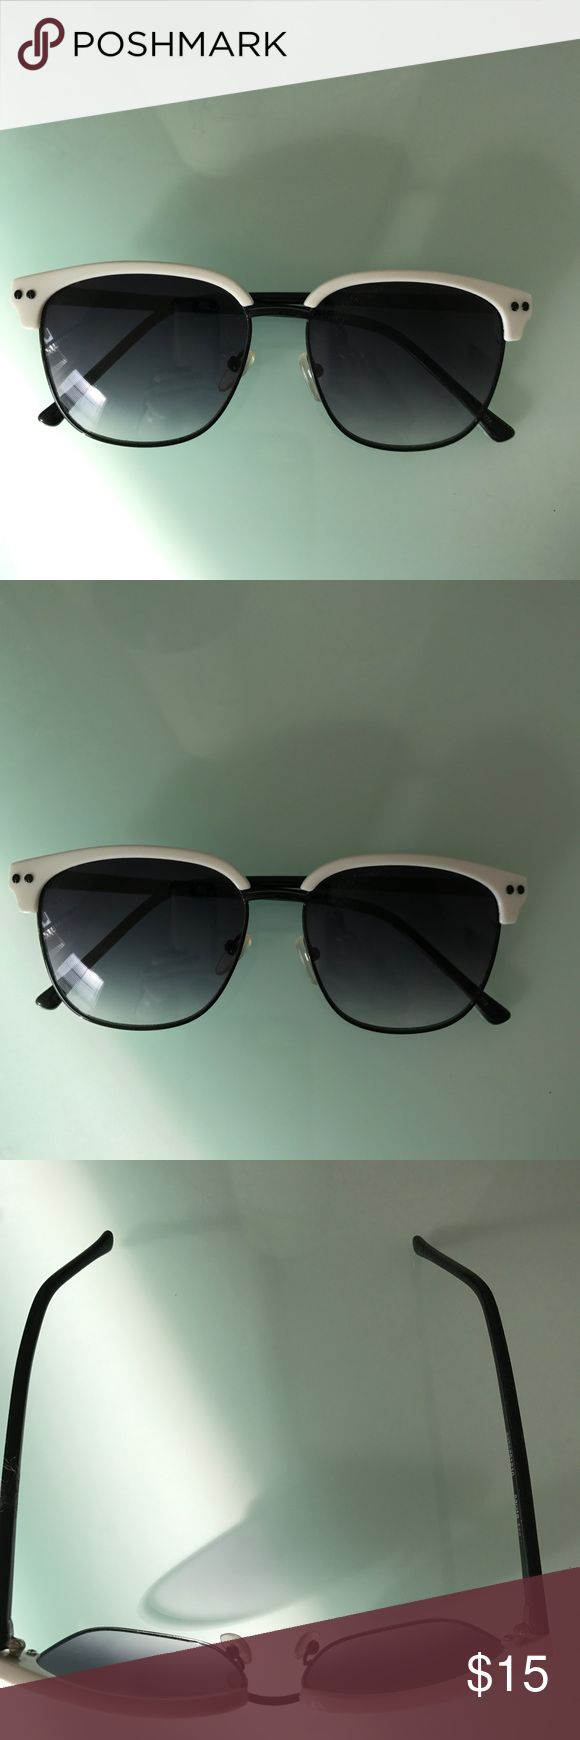 NEW * Sunglasses by NYS ~ CUTE, Brand NEW! NEW * Sunglasses by NYS ~ Super CUTE, Brand NEW! Color: Black & White. From Cabazon Factory Outlet.  Never worn ~ reducing personal collection. Absolutely PERFECT! NYS Accessories Sunglasses